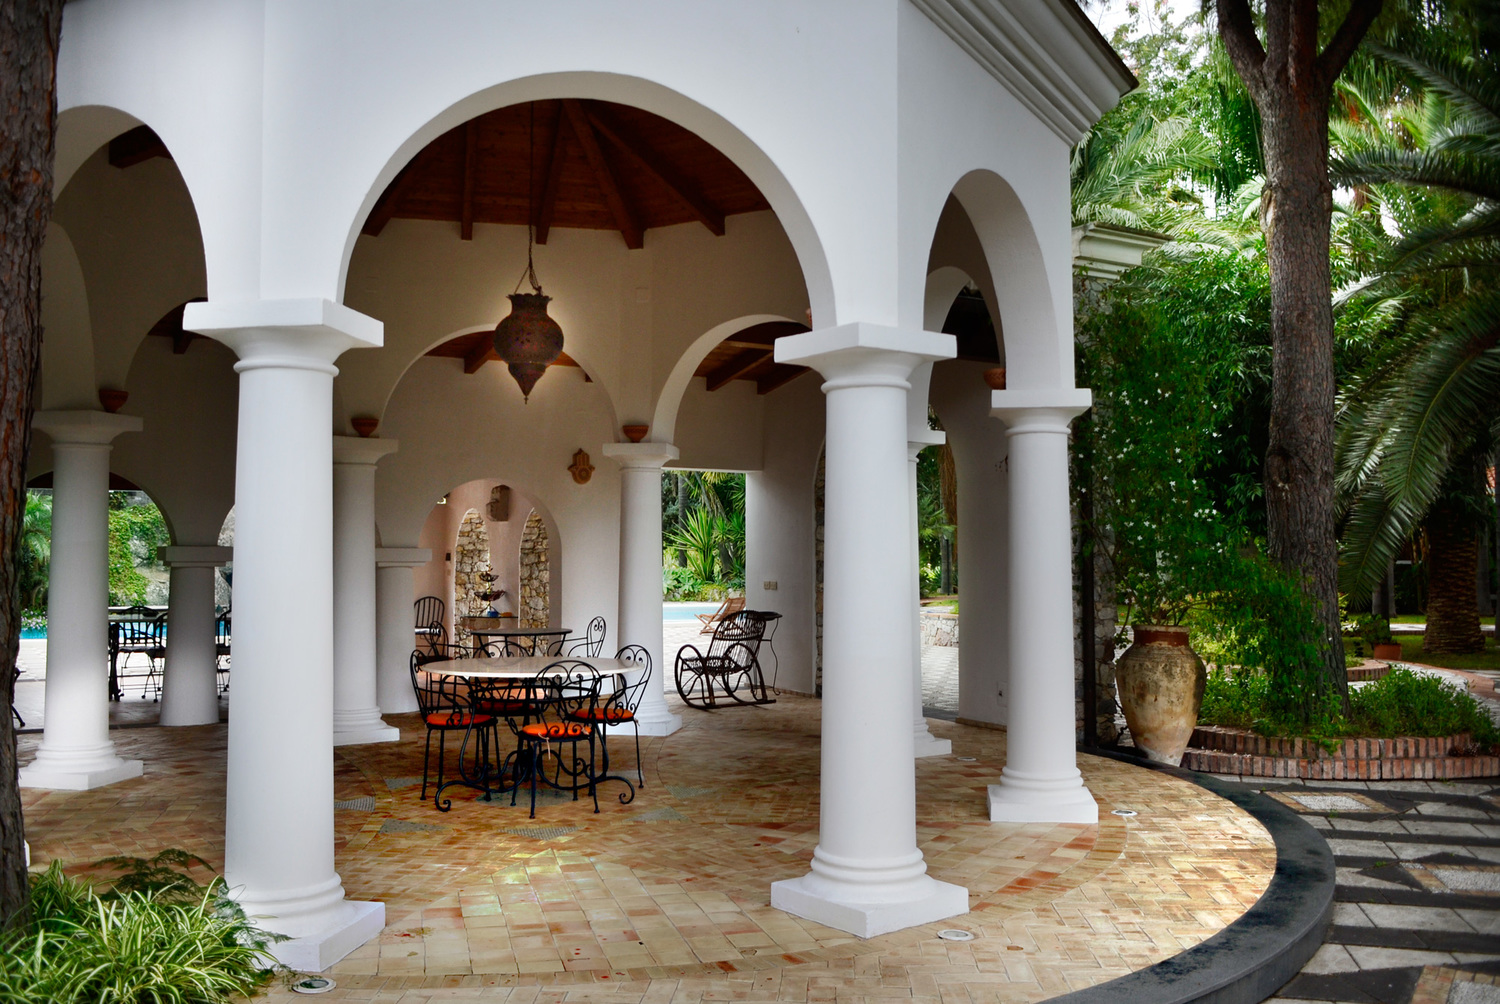 The Villa is the perfect location for your wedding reception or to celebrate an important event.